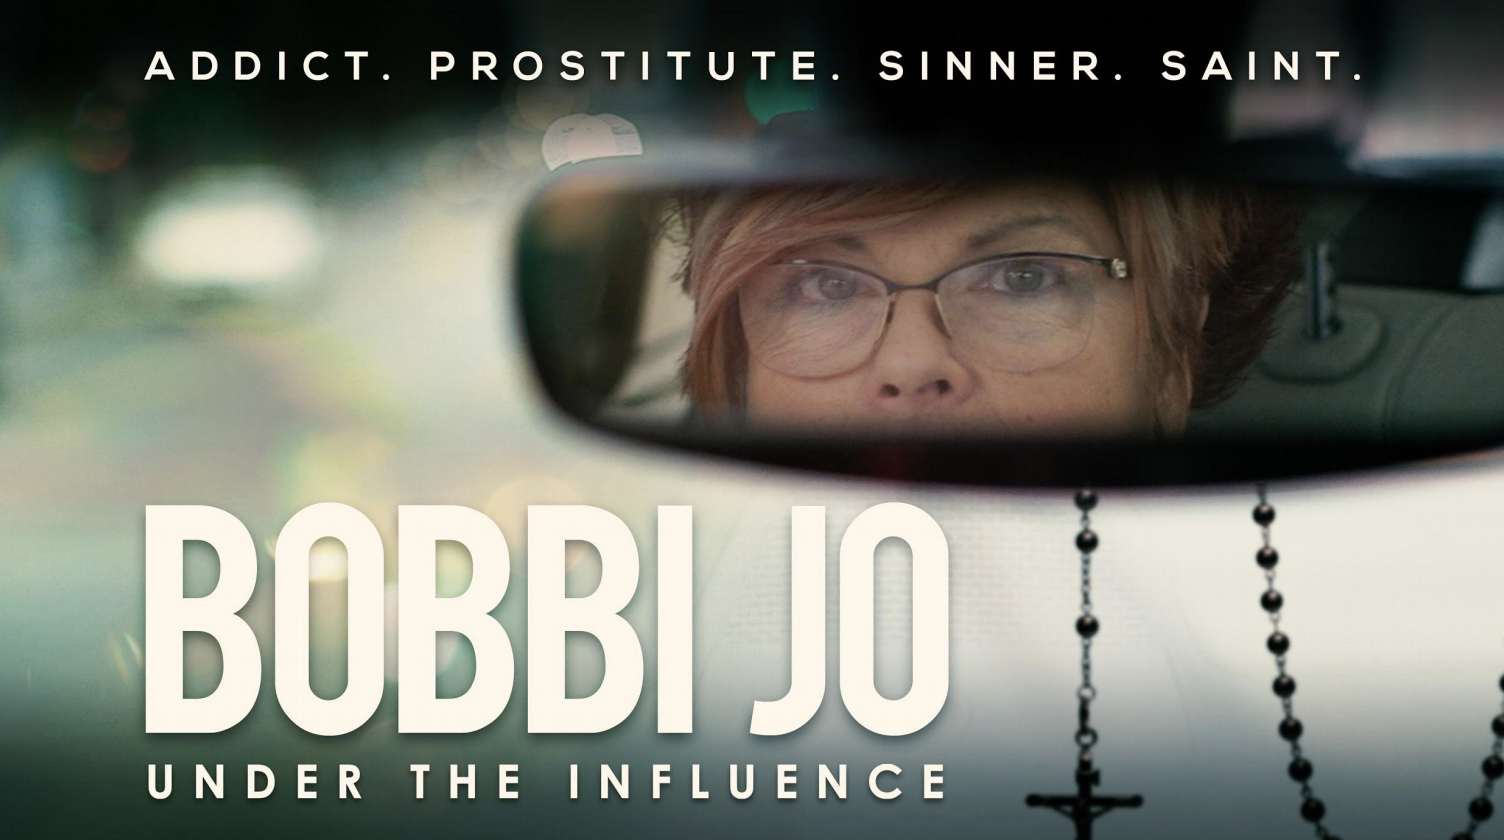 Bobbi Jo Reed went from addict to hero: Helps thousands out of addiction through Christ